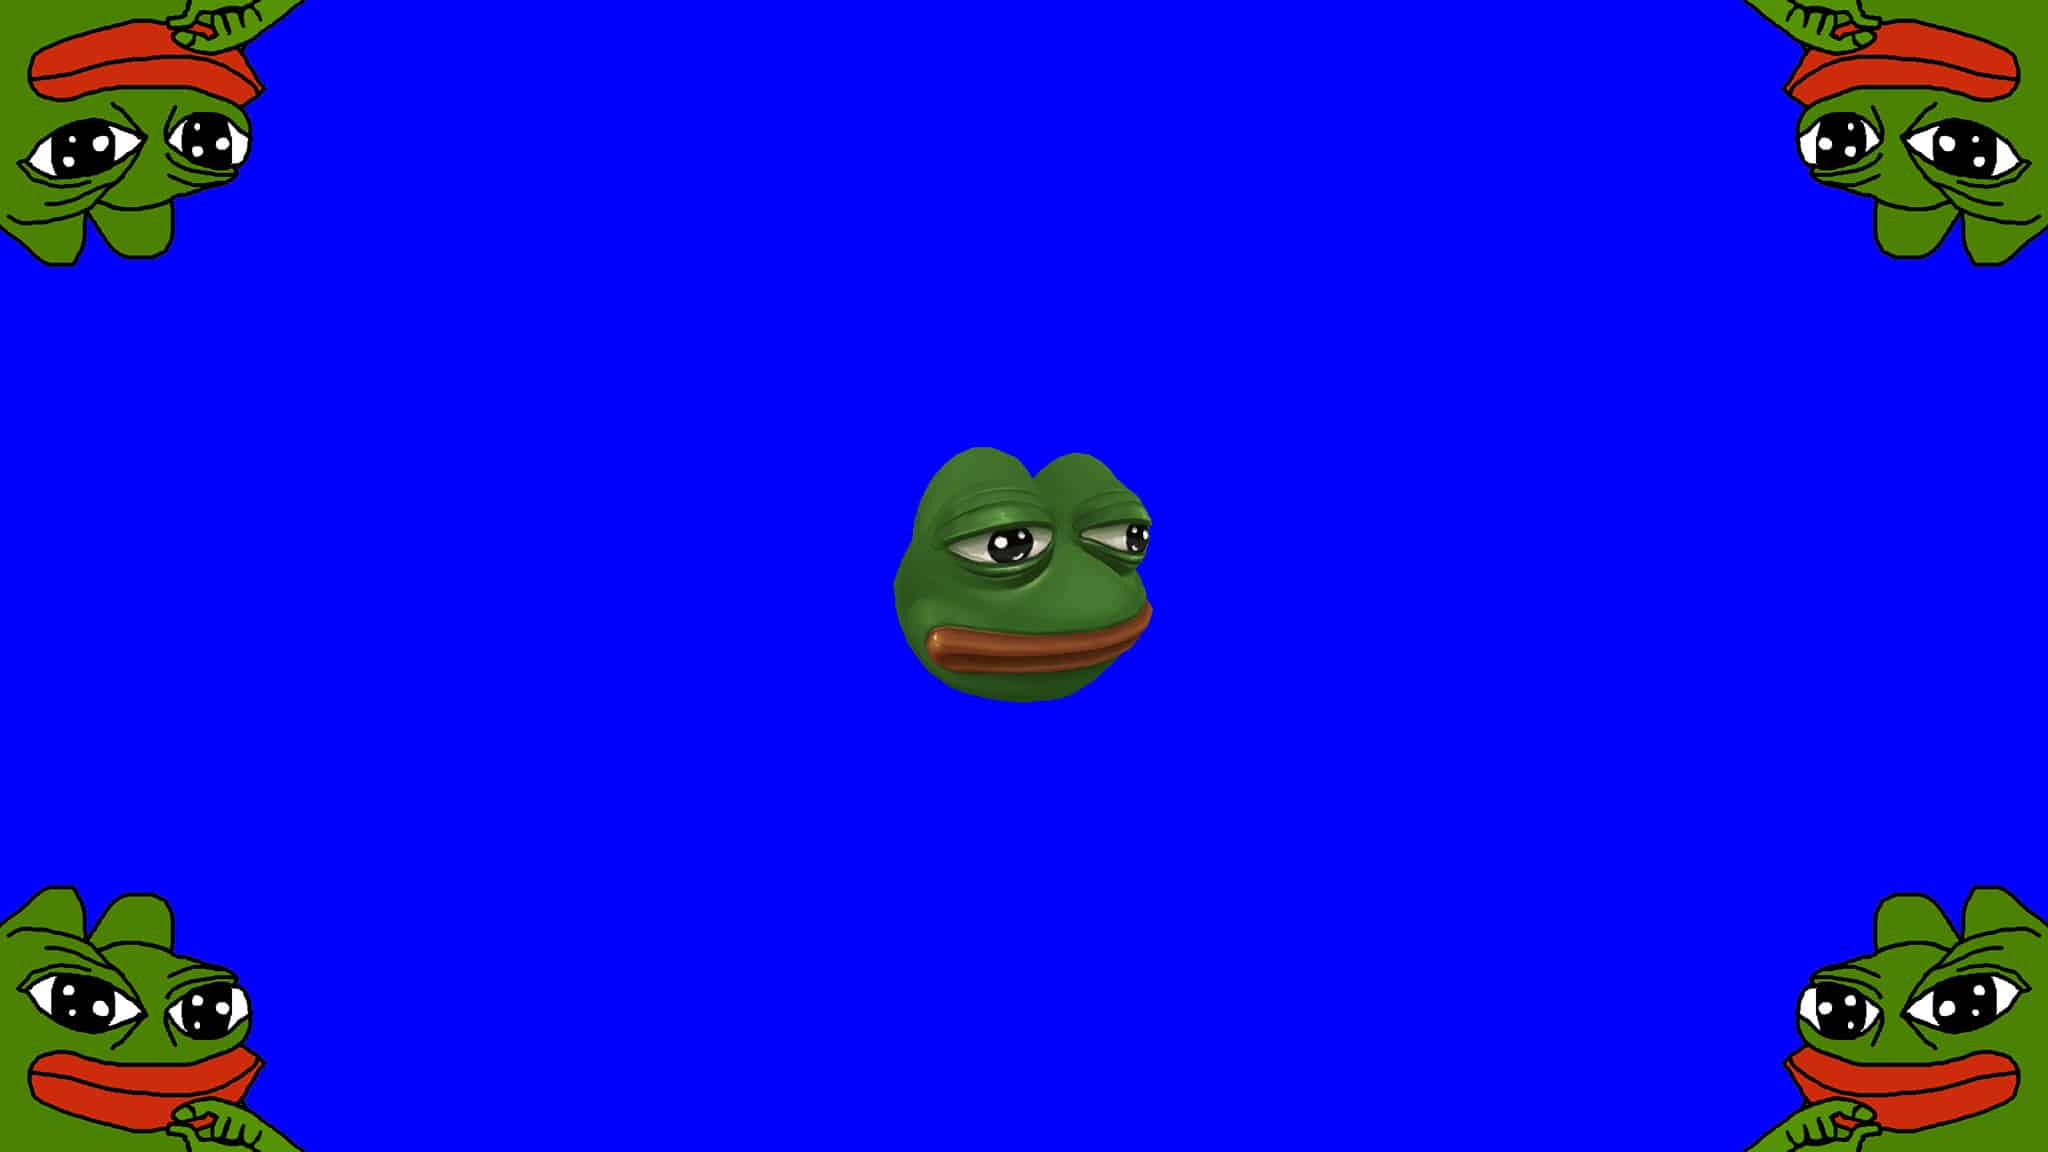 Savepepe When Did Pepe The Frog Get So Angry